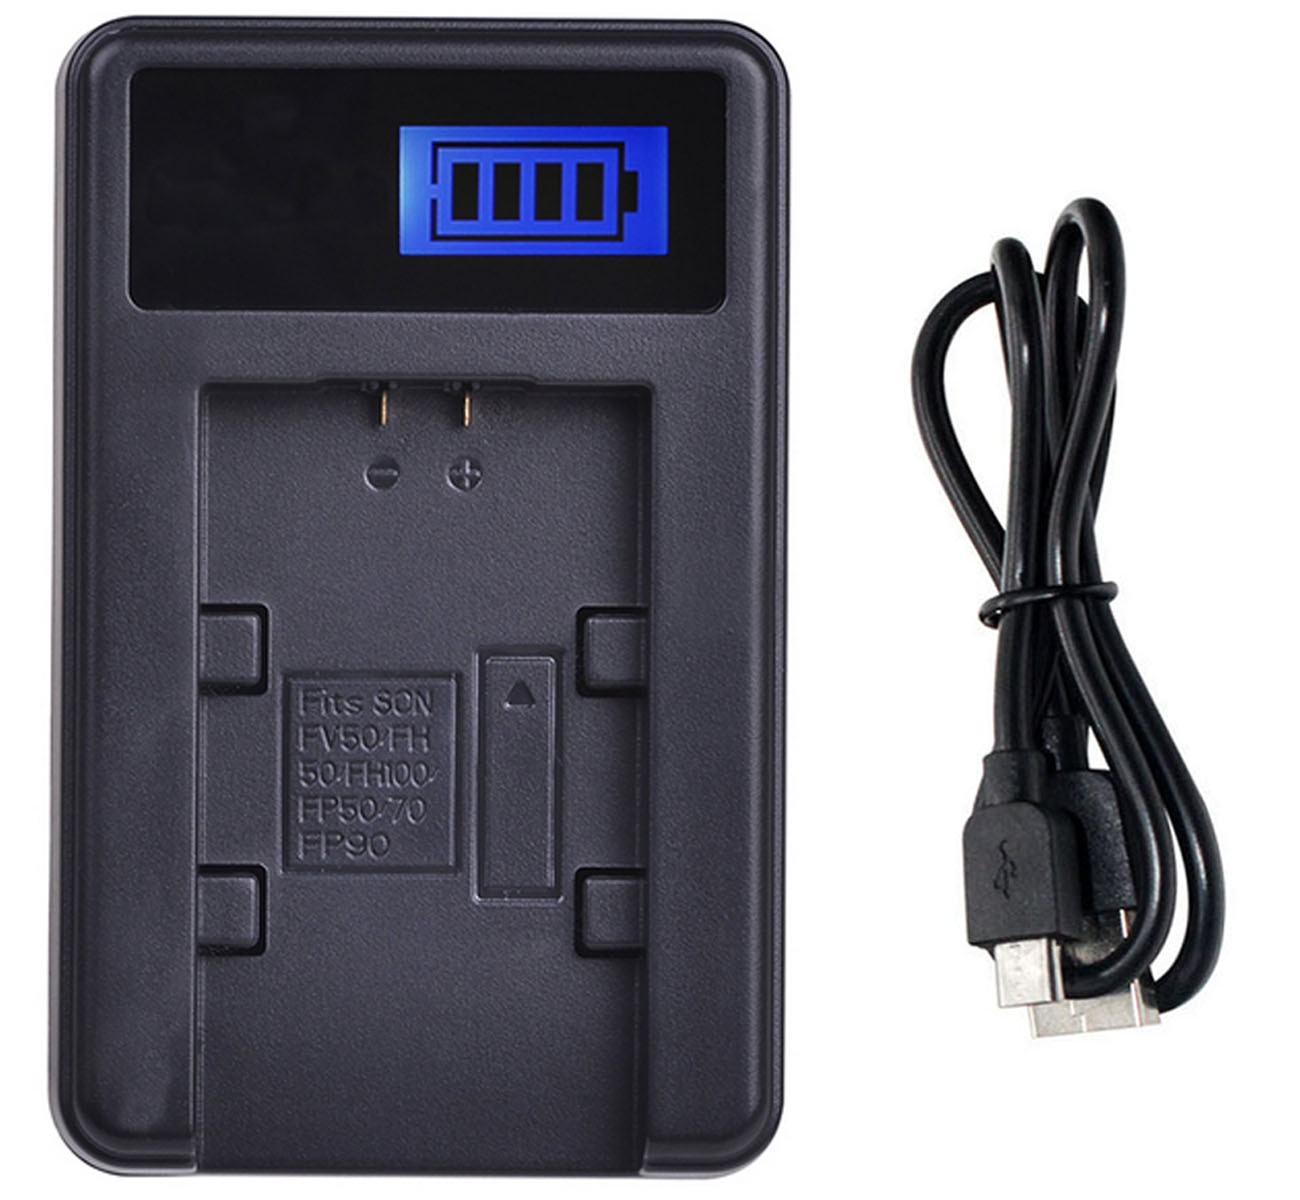 LCD USB Battery Charger for Sony HDR-PJ510, HDR-PJ530, HDR-PJ540, HDR-PJ580, HDR-PJ580V, HDR-PJ590,H